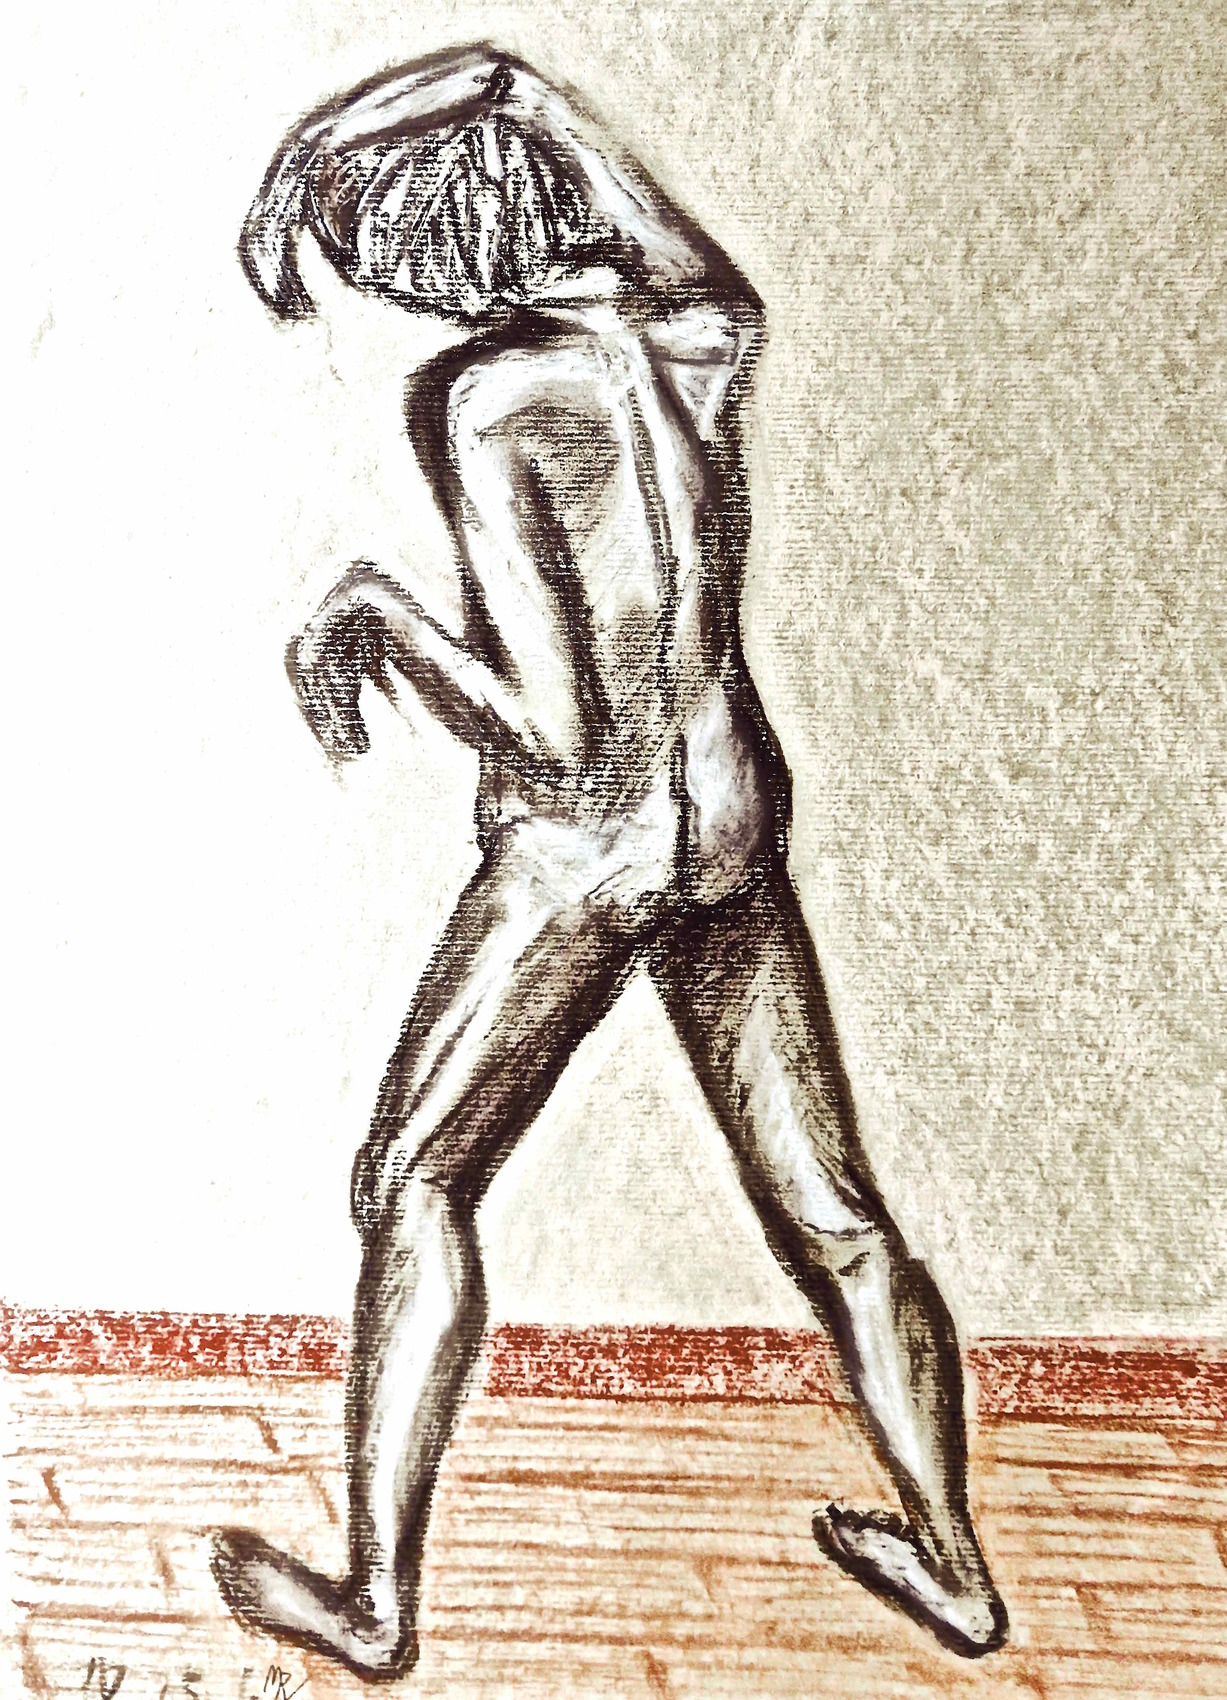 Dessin Homme Debout De Dos Jacques Drawing A Standing Man From Behind